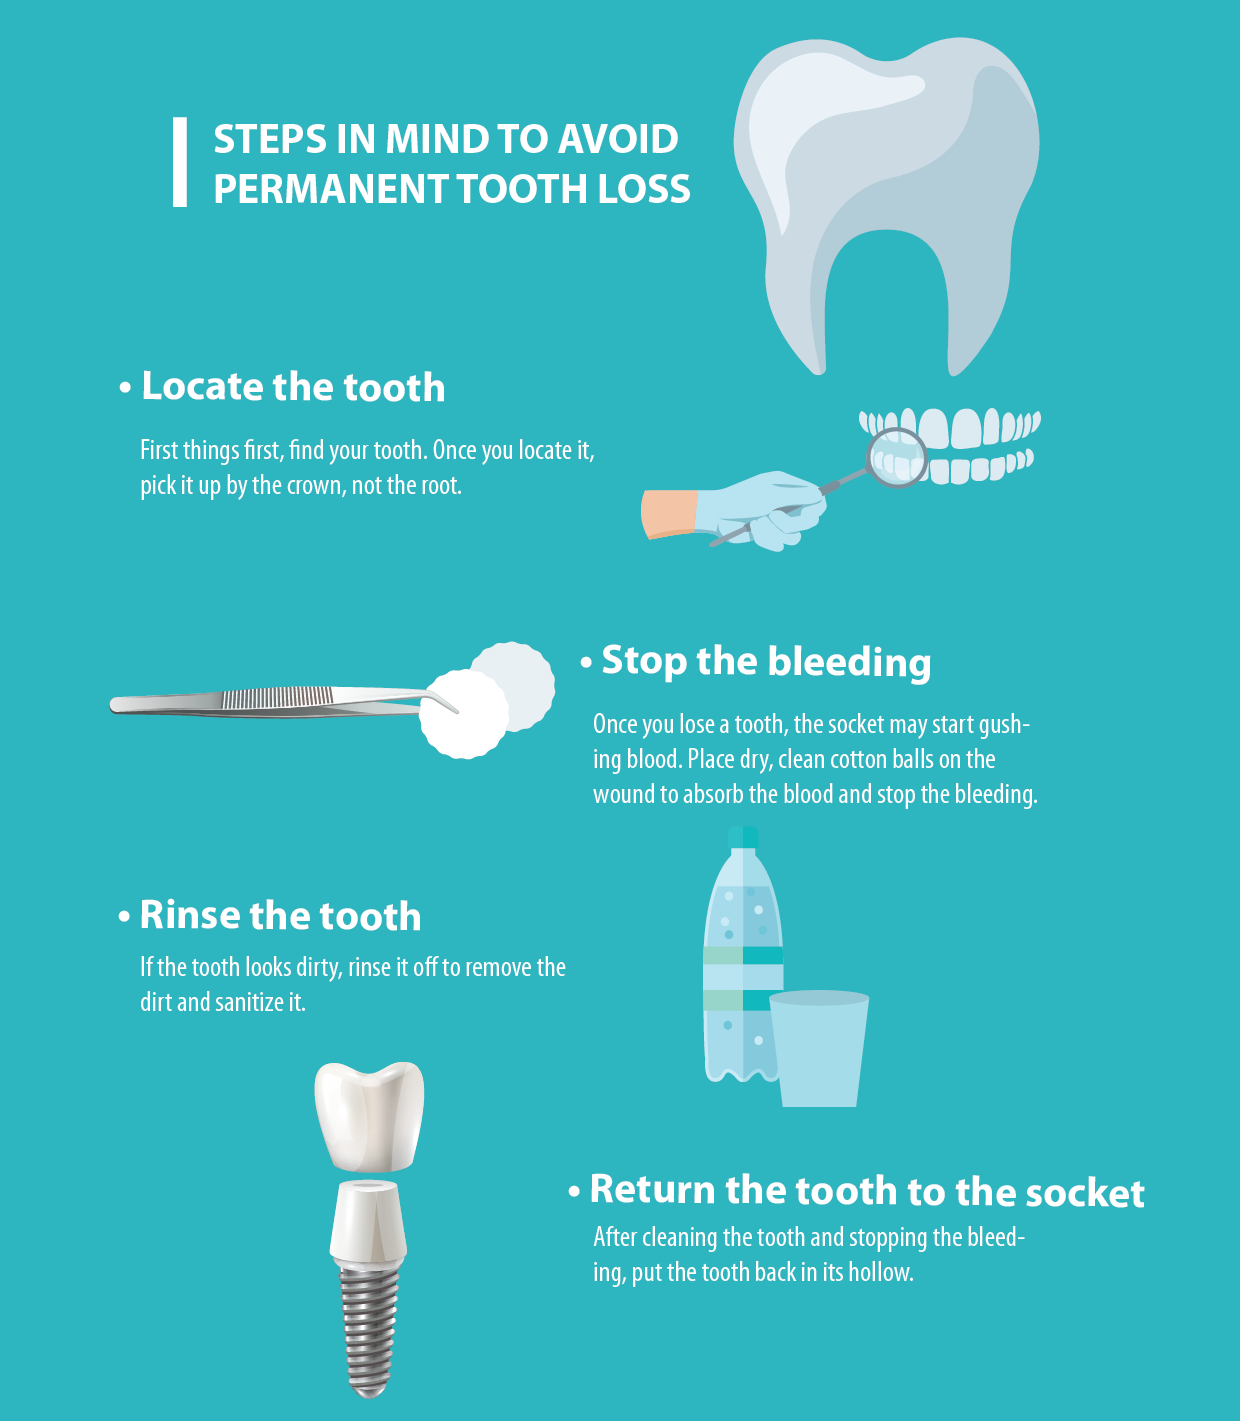 Steps in mind to avoid permanent tooth loss